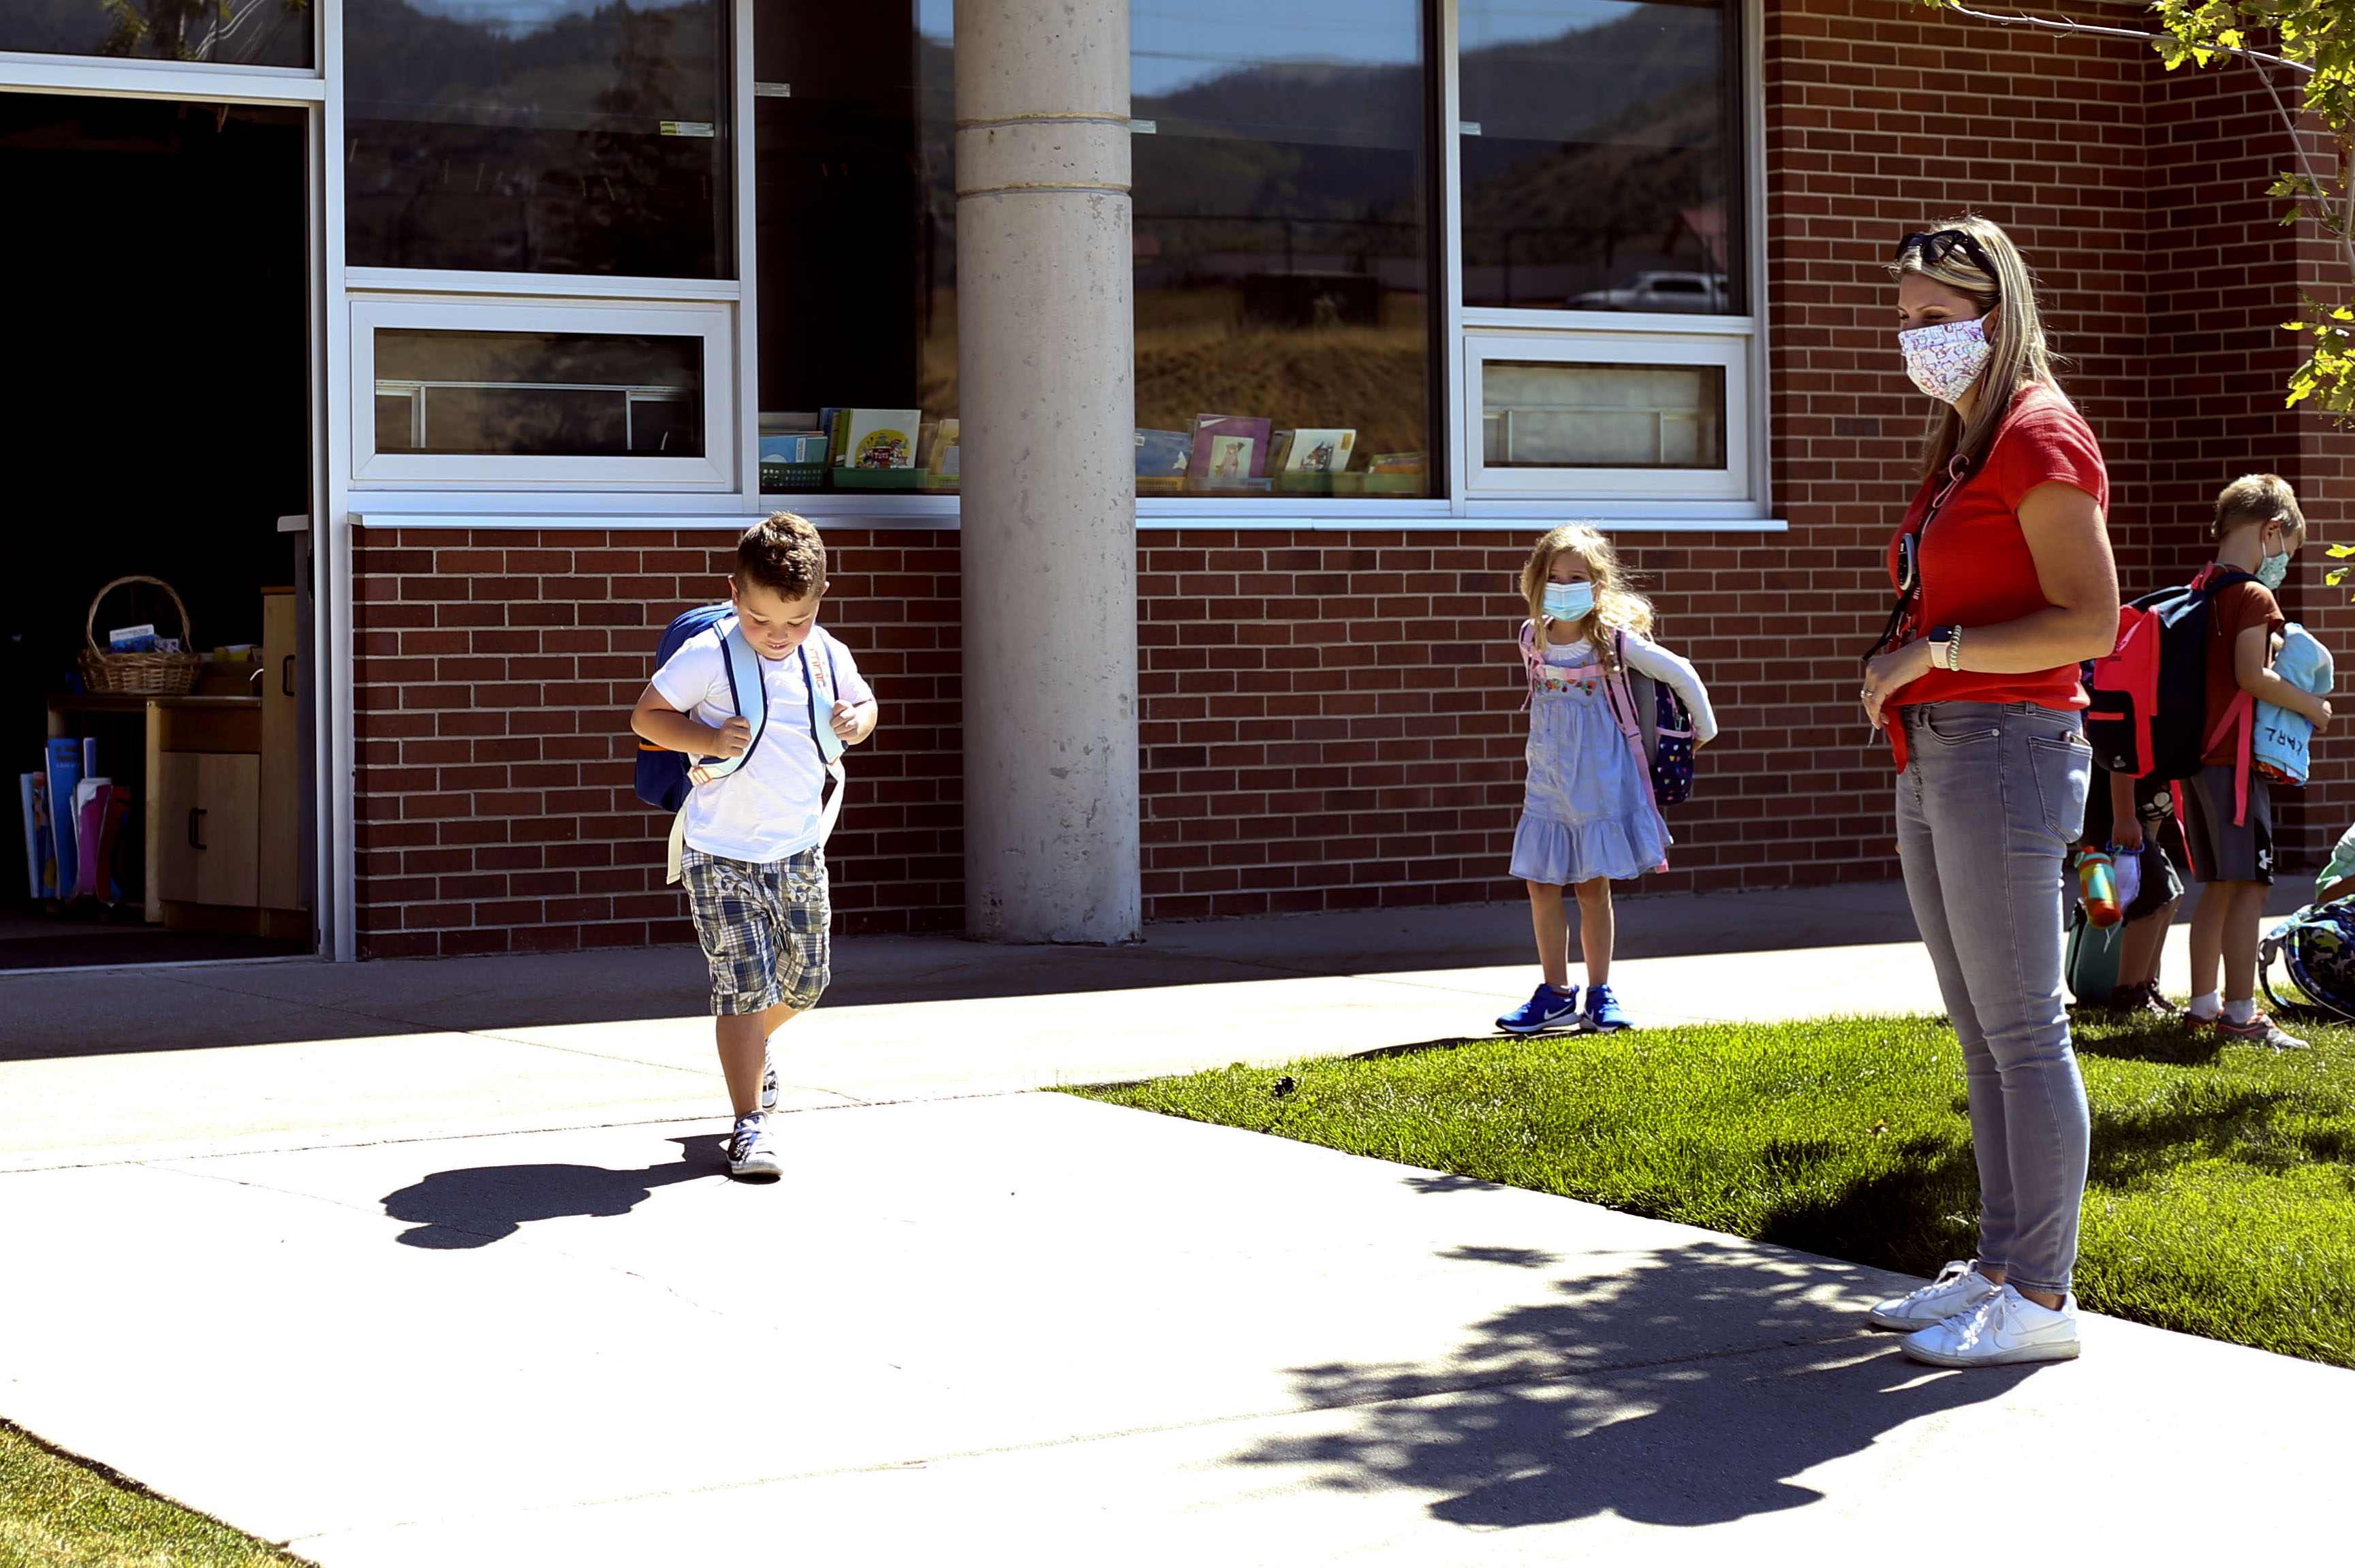 Dominic Francese, left, exits his classroom after school at Jeremy Ranch Elementary School in Park City on Friday, Sept. 4, 2020. Parents have been asked to remain in their cars during pickup and drop off at school. Francese's mother, Laura, would like the ability to get general COVID information about cases or outbreaks in schools. Currently there is no comprehensive information, although the state is working on a dashboard.